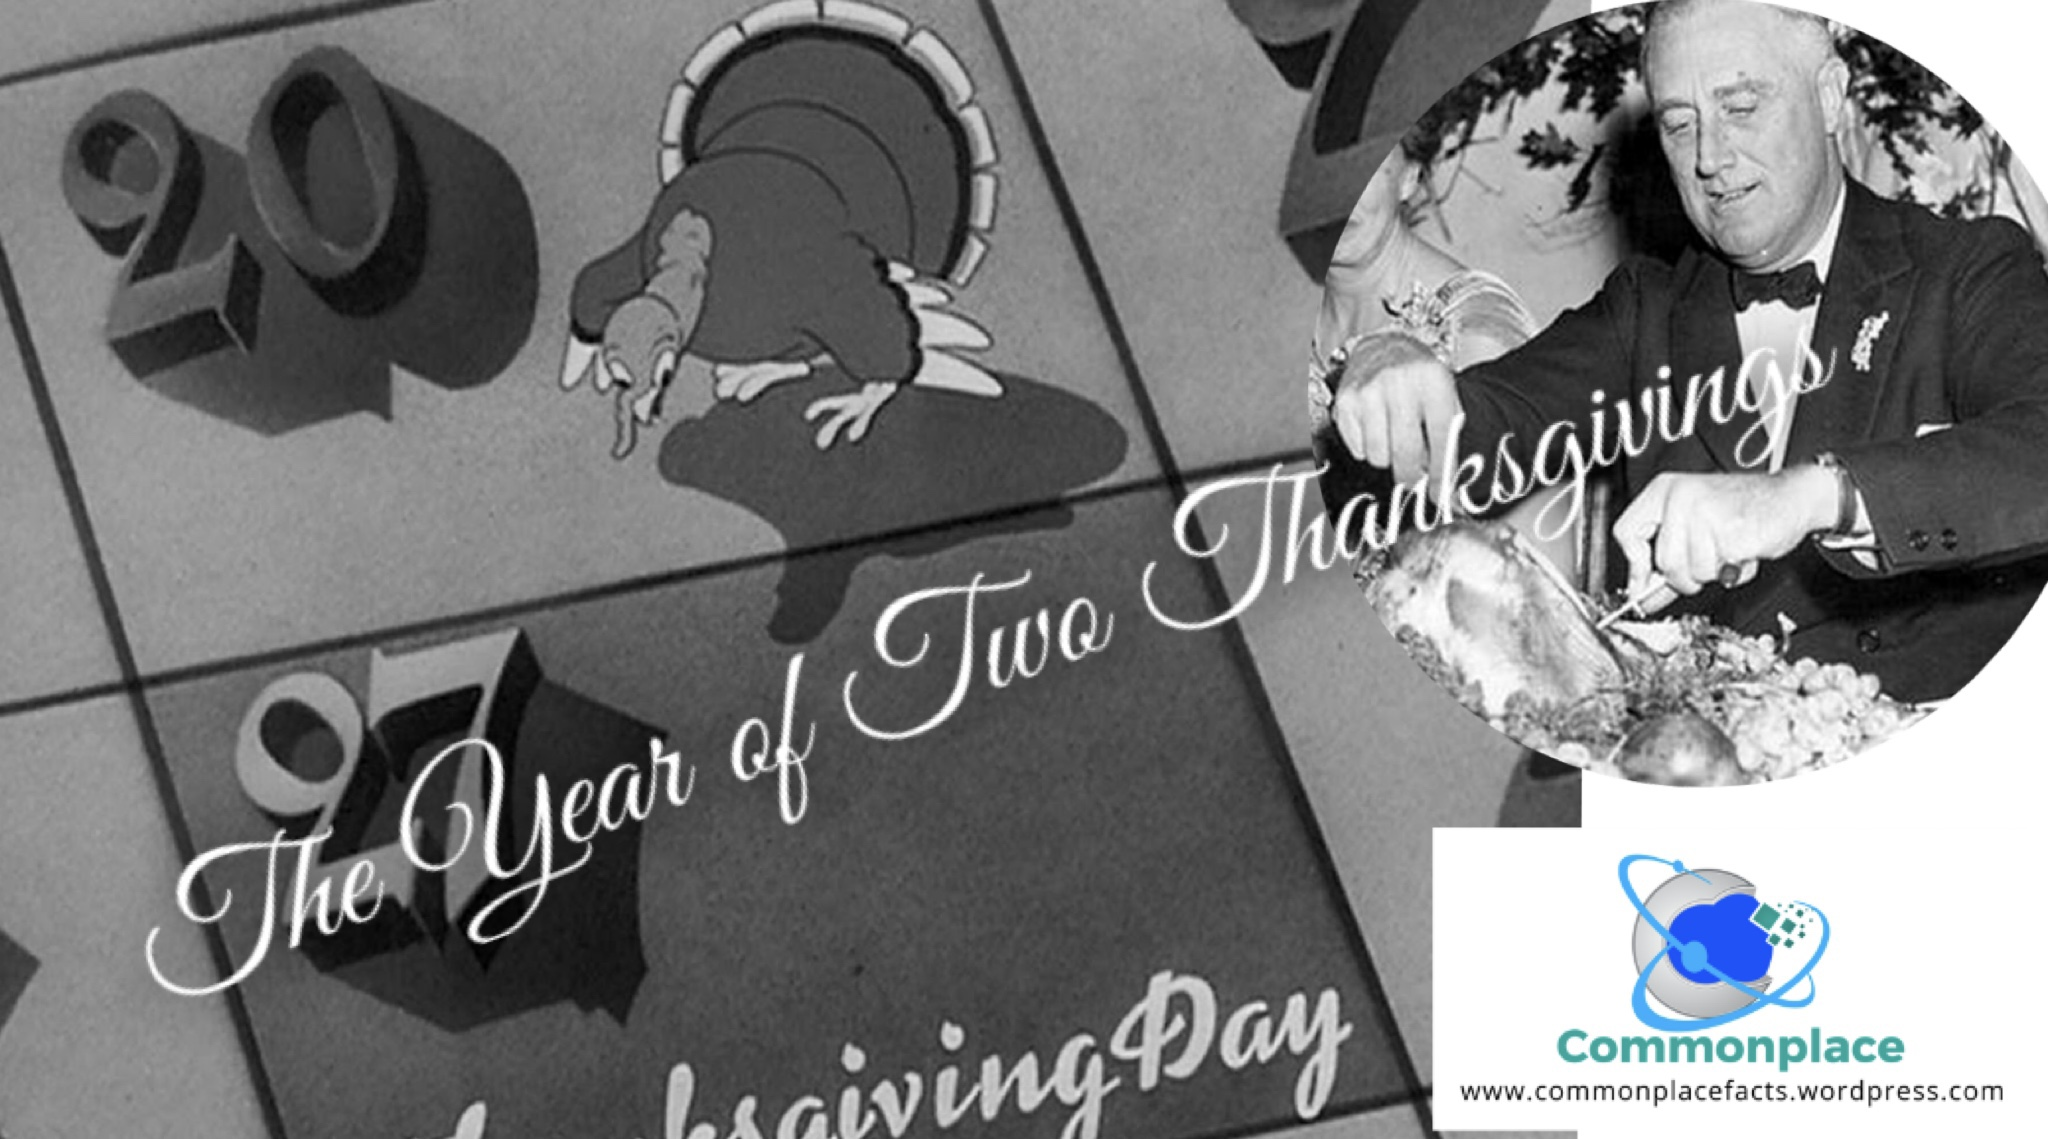 The Year of Two Thanksgivings